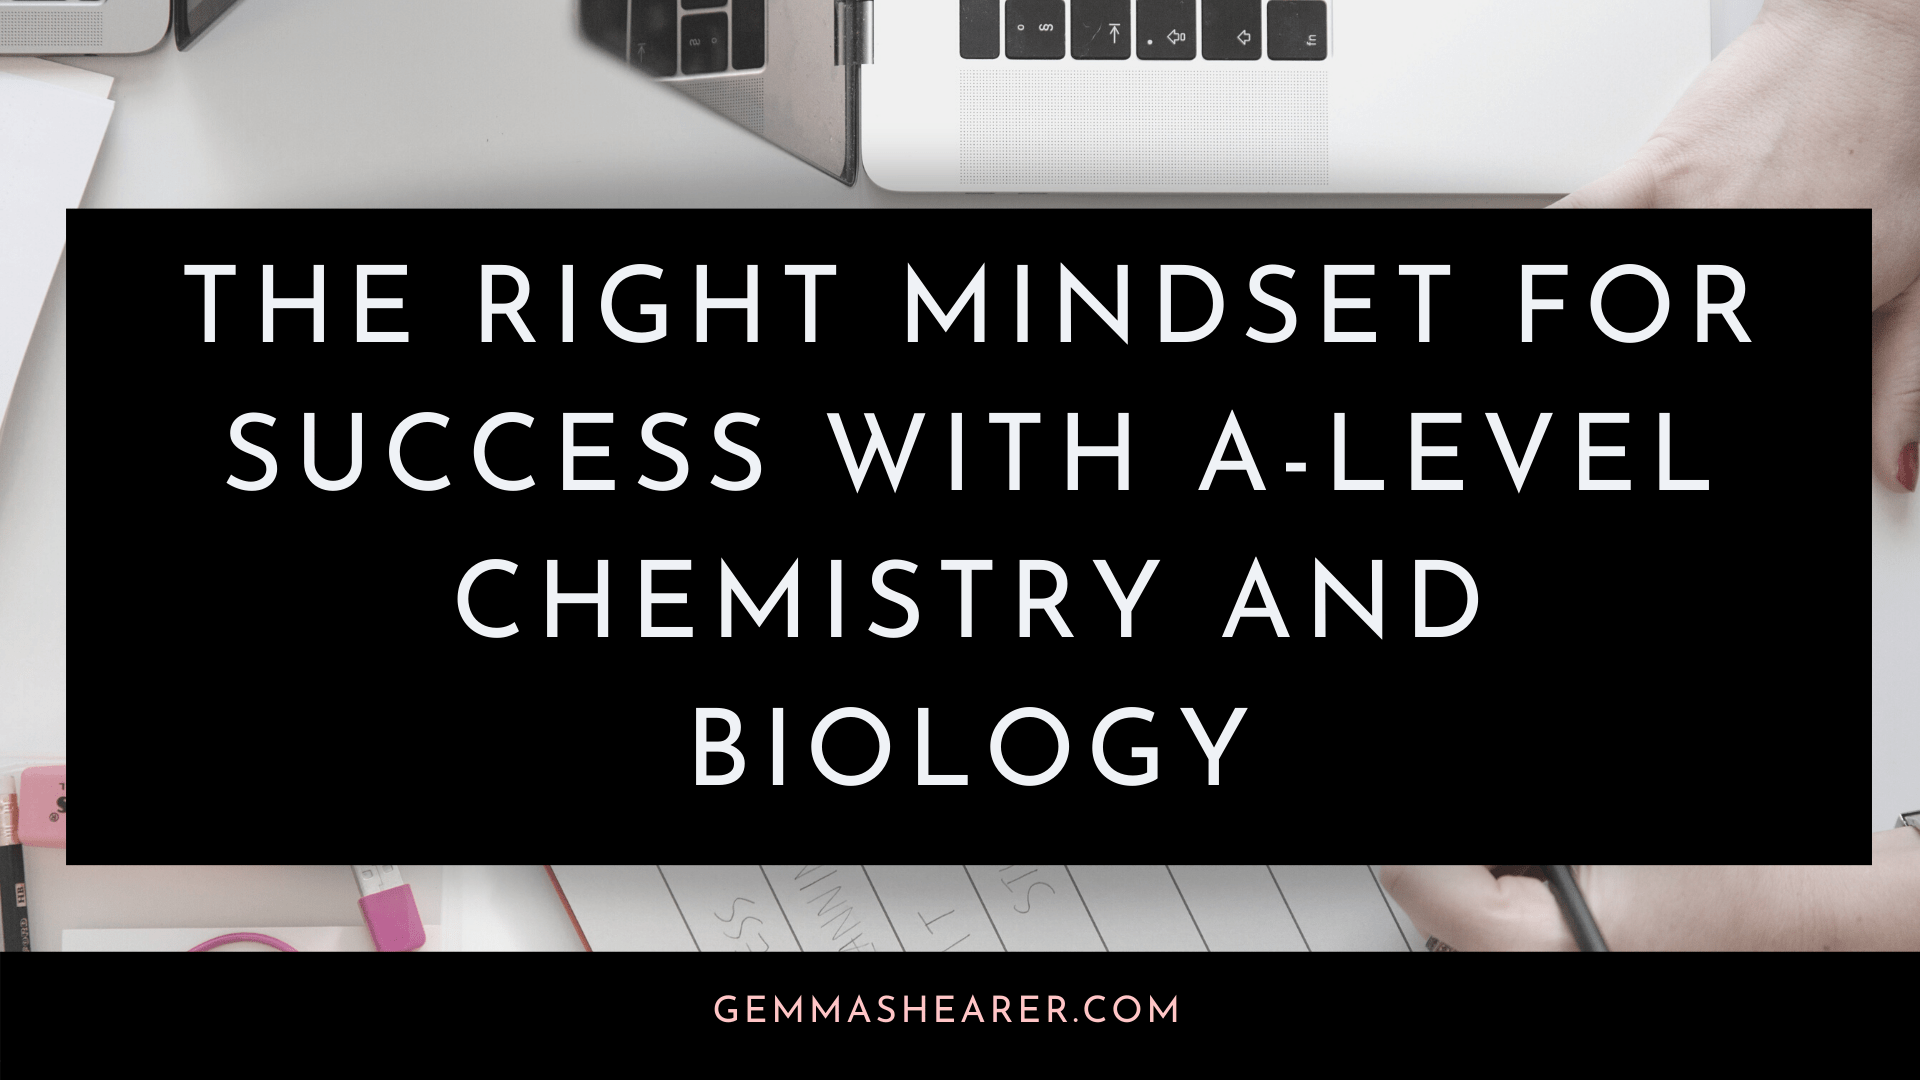 Mindset for A-level chemistry and Biology